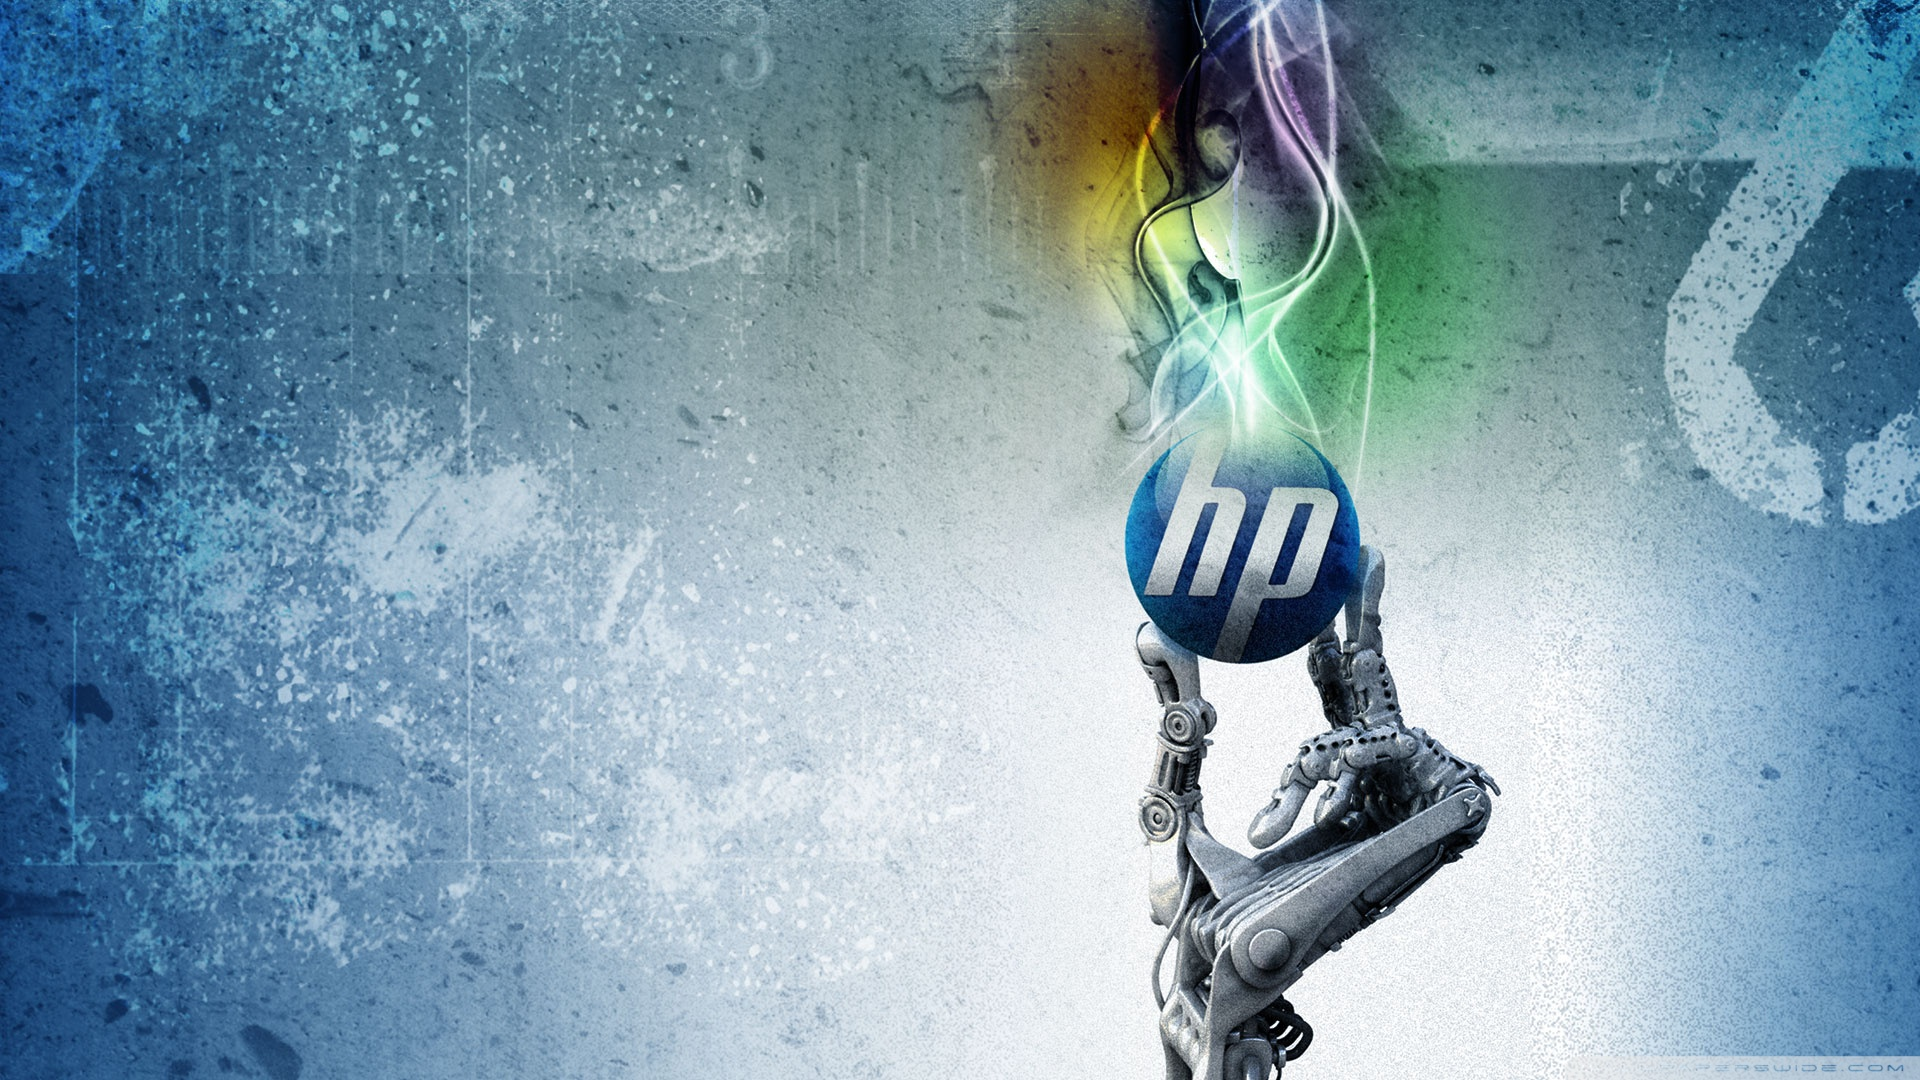 BROWSE hp wallpaper for laptop download  HD Photo Wallpaper 1920x1080